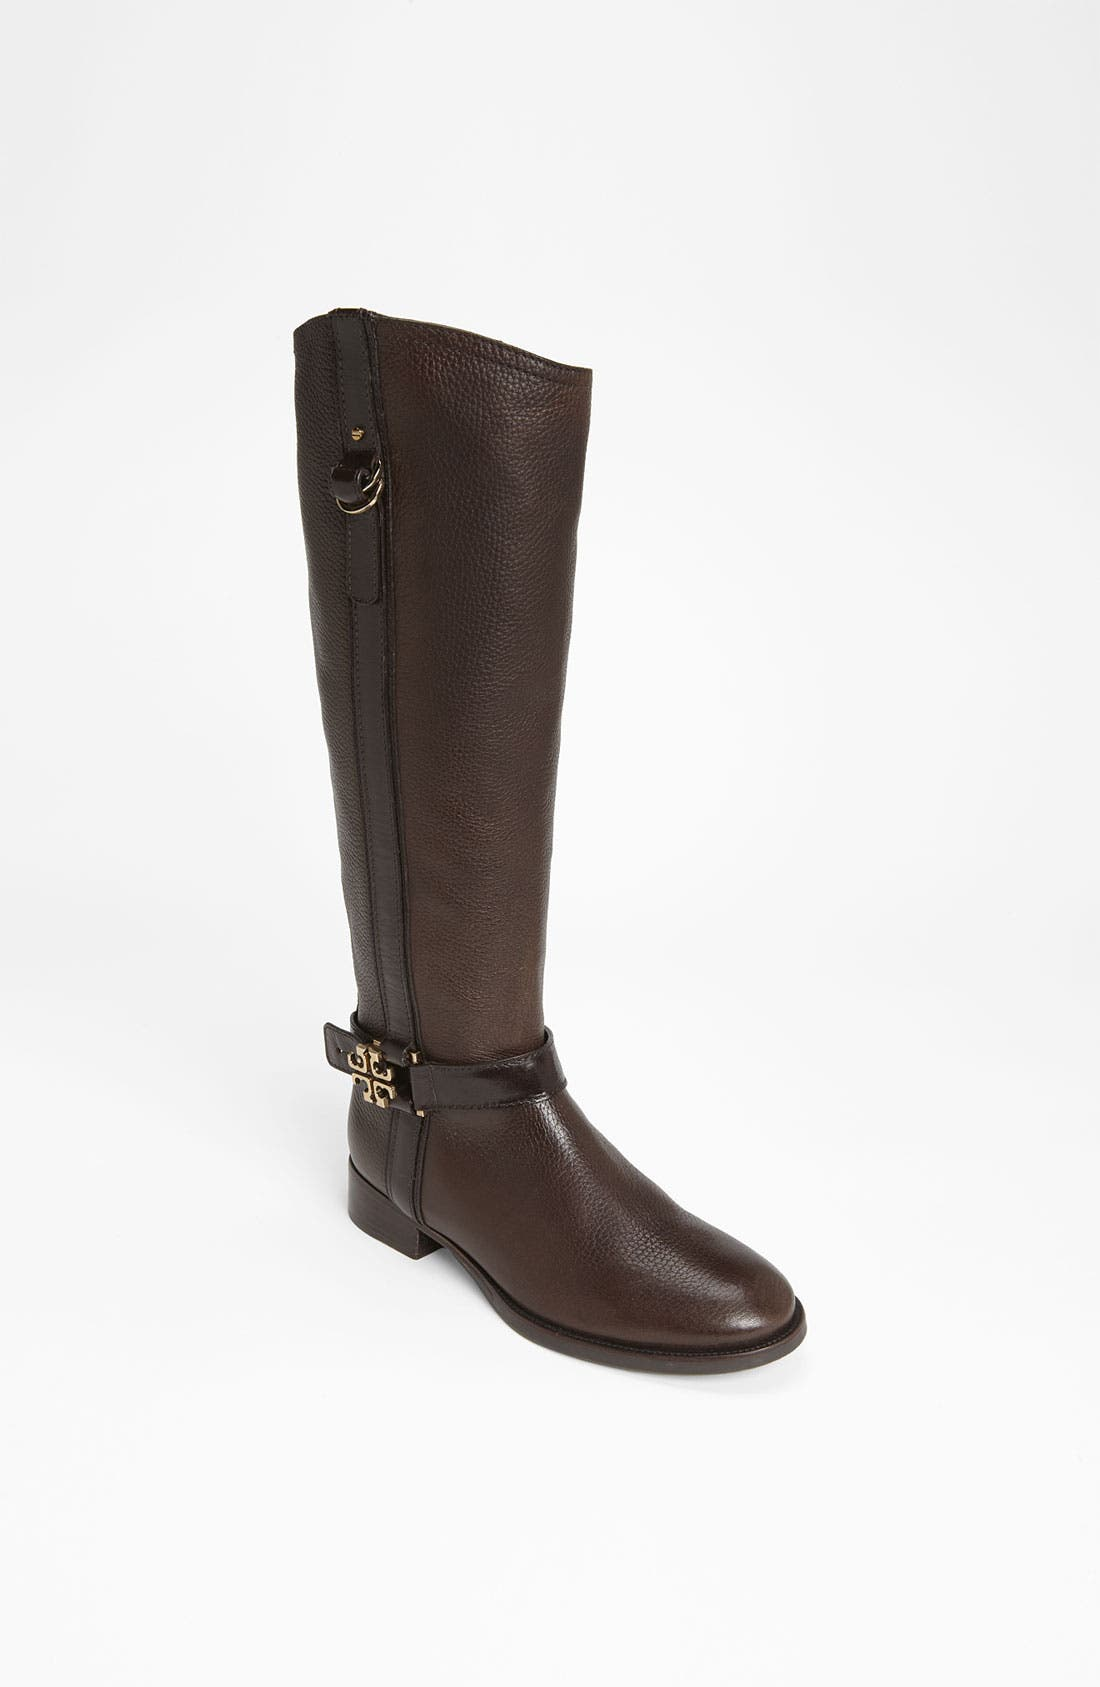 Alternate Image 1 Selected - Tory Burch 'Elina' Riding Boot